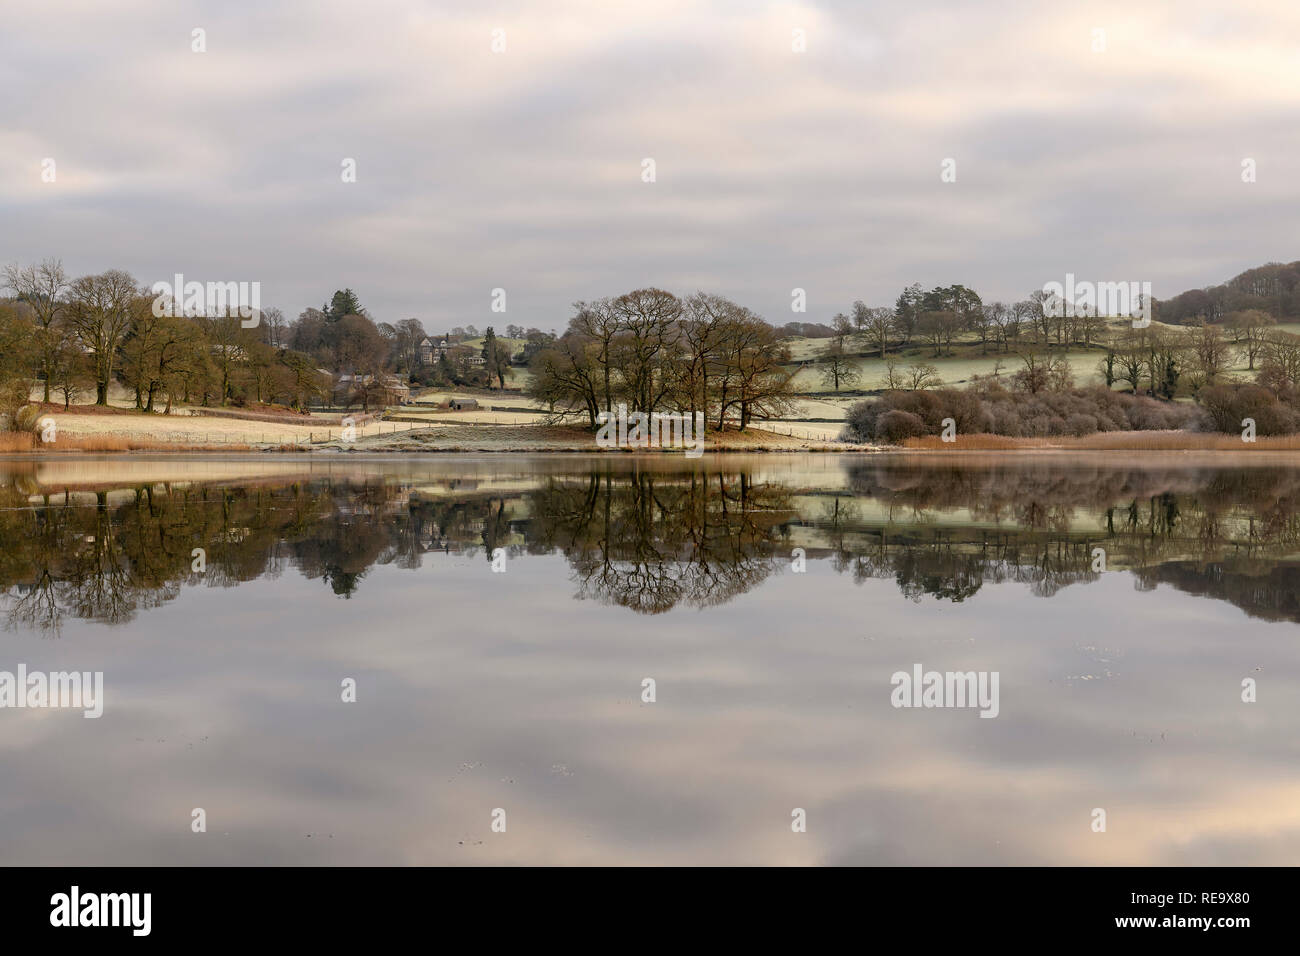 Esthwaite Water reflections on a cold, frosty January morning - Stock Image